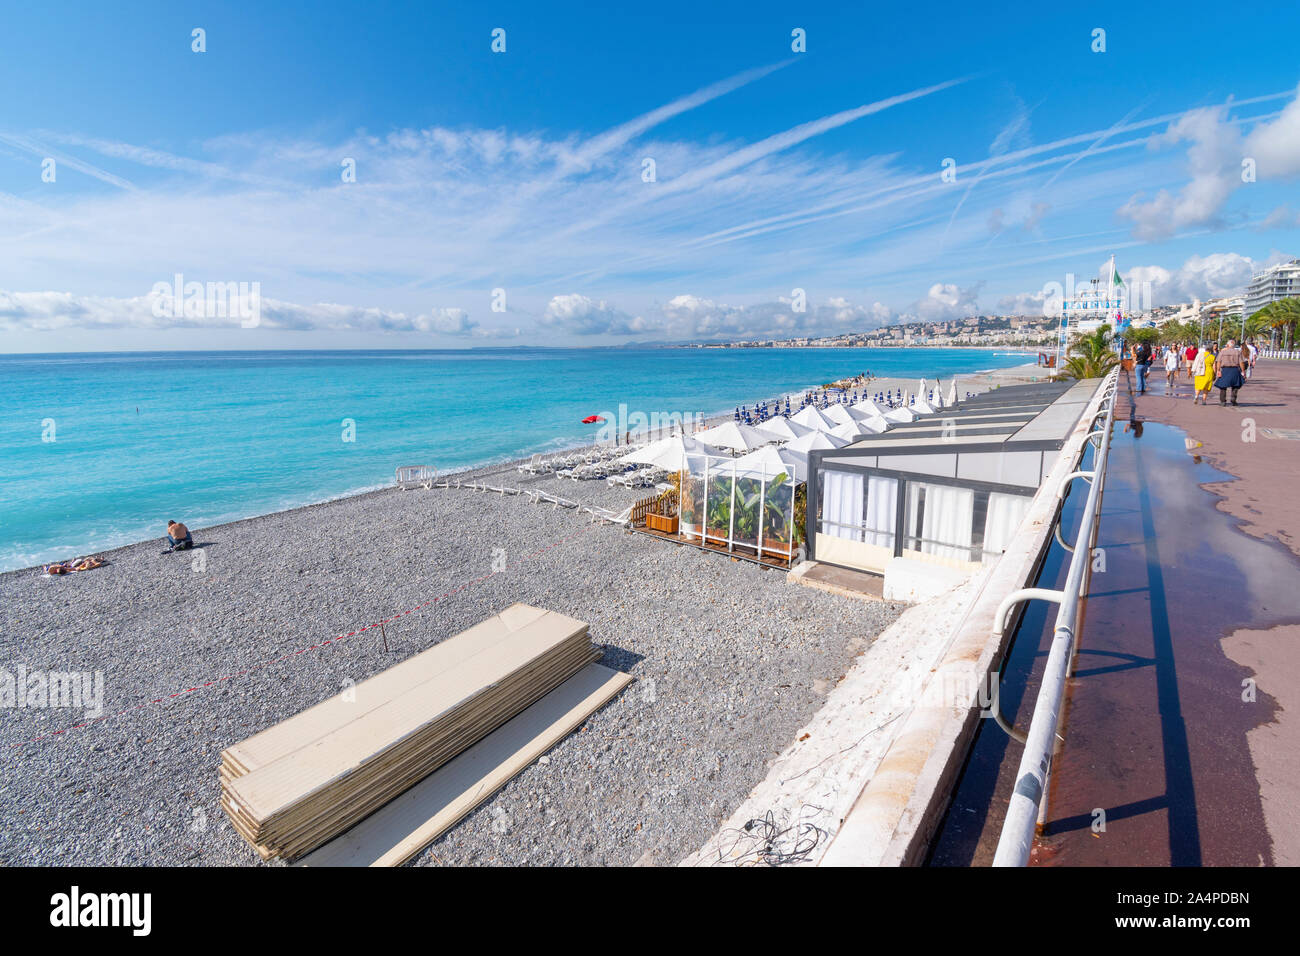 A private beach club with white umbrellas and lounges on the beach of the French Riviera at Nice France Stock Photo